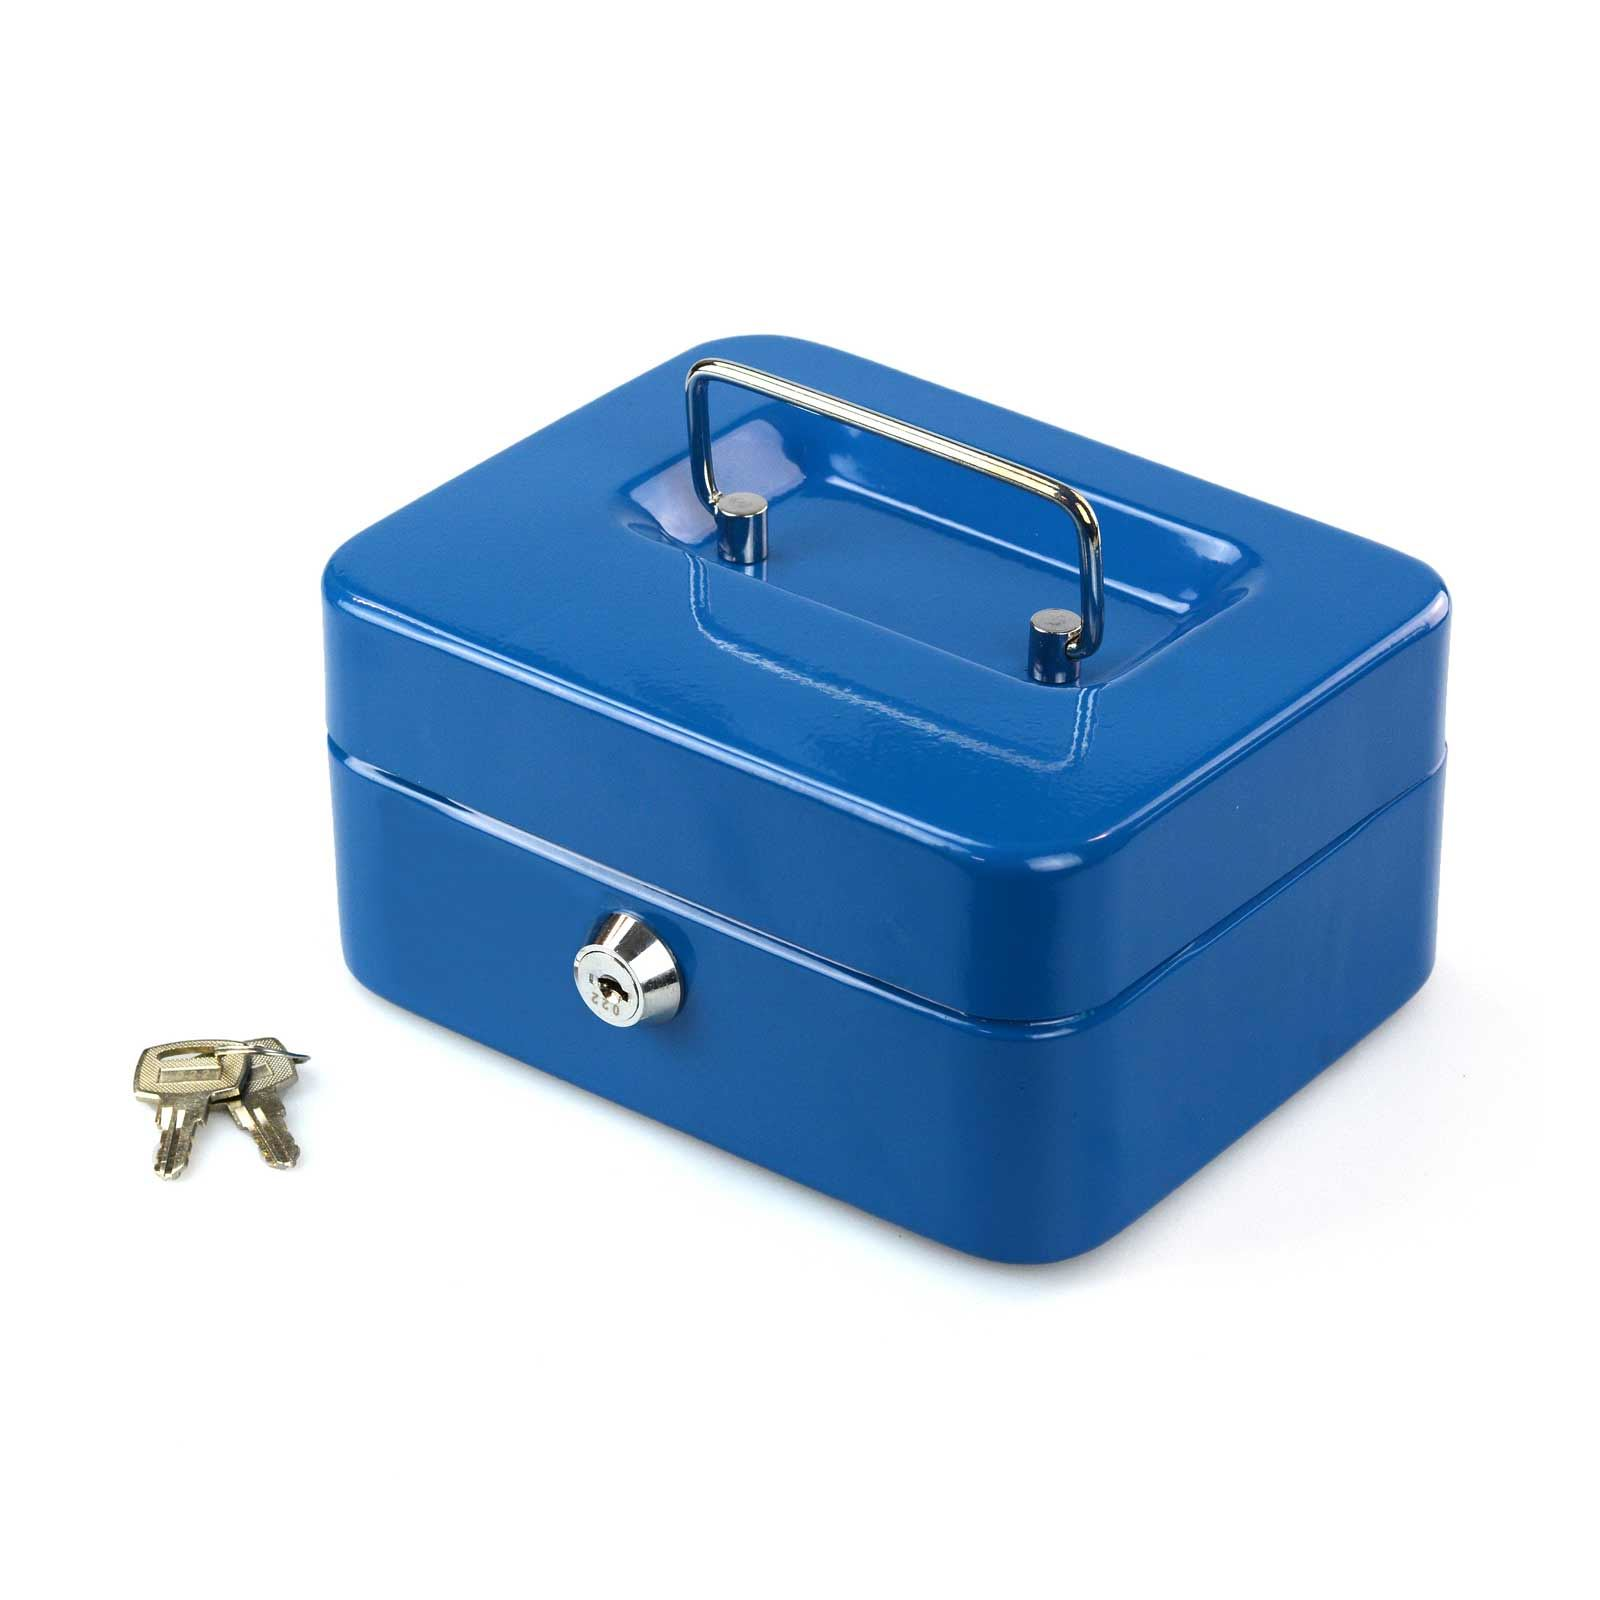 Petty-Cash-Safety-Deposit-Box-Metal-Security-Steel-Money-Bank-Coin-Tray-holder thumbnail 10